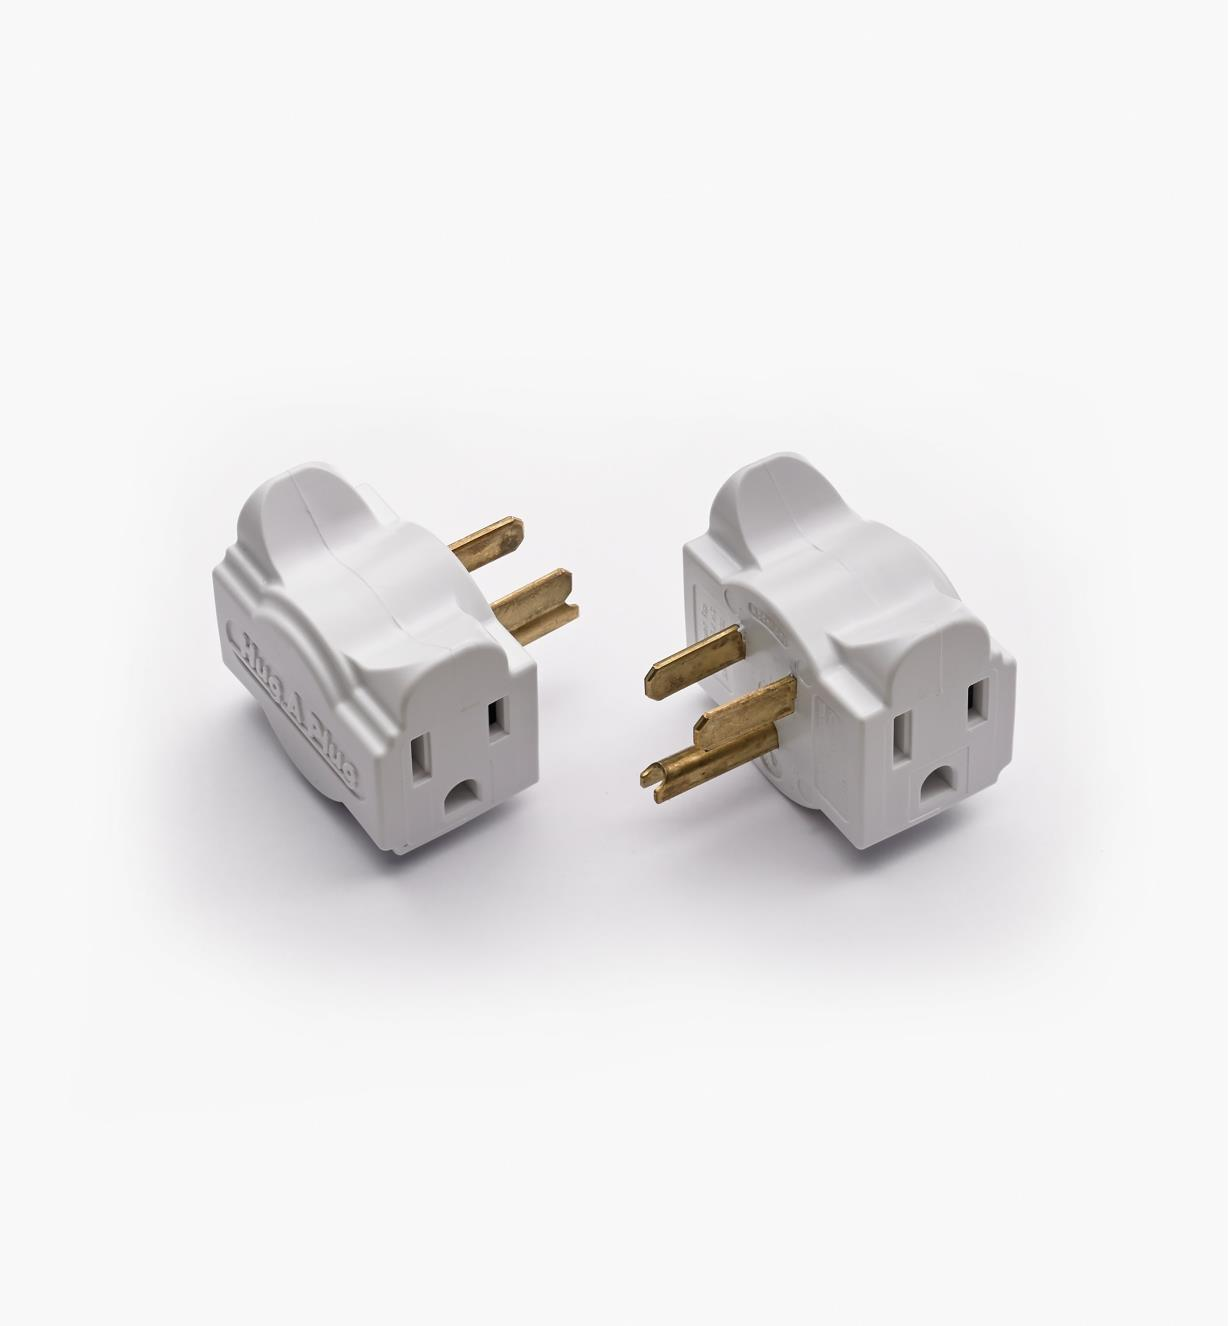 09A0850 - White Hug-A-Plug Low-Profile Plug Adapter, pair